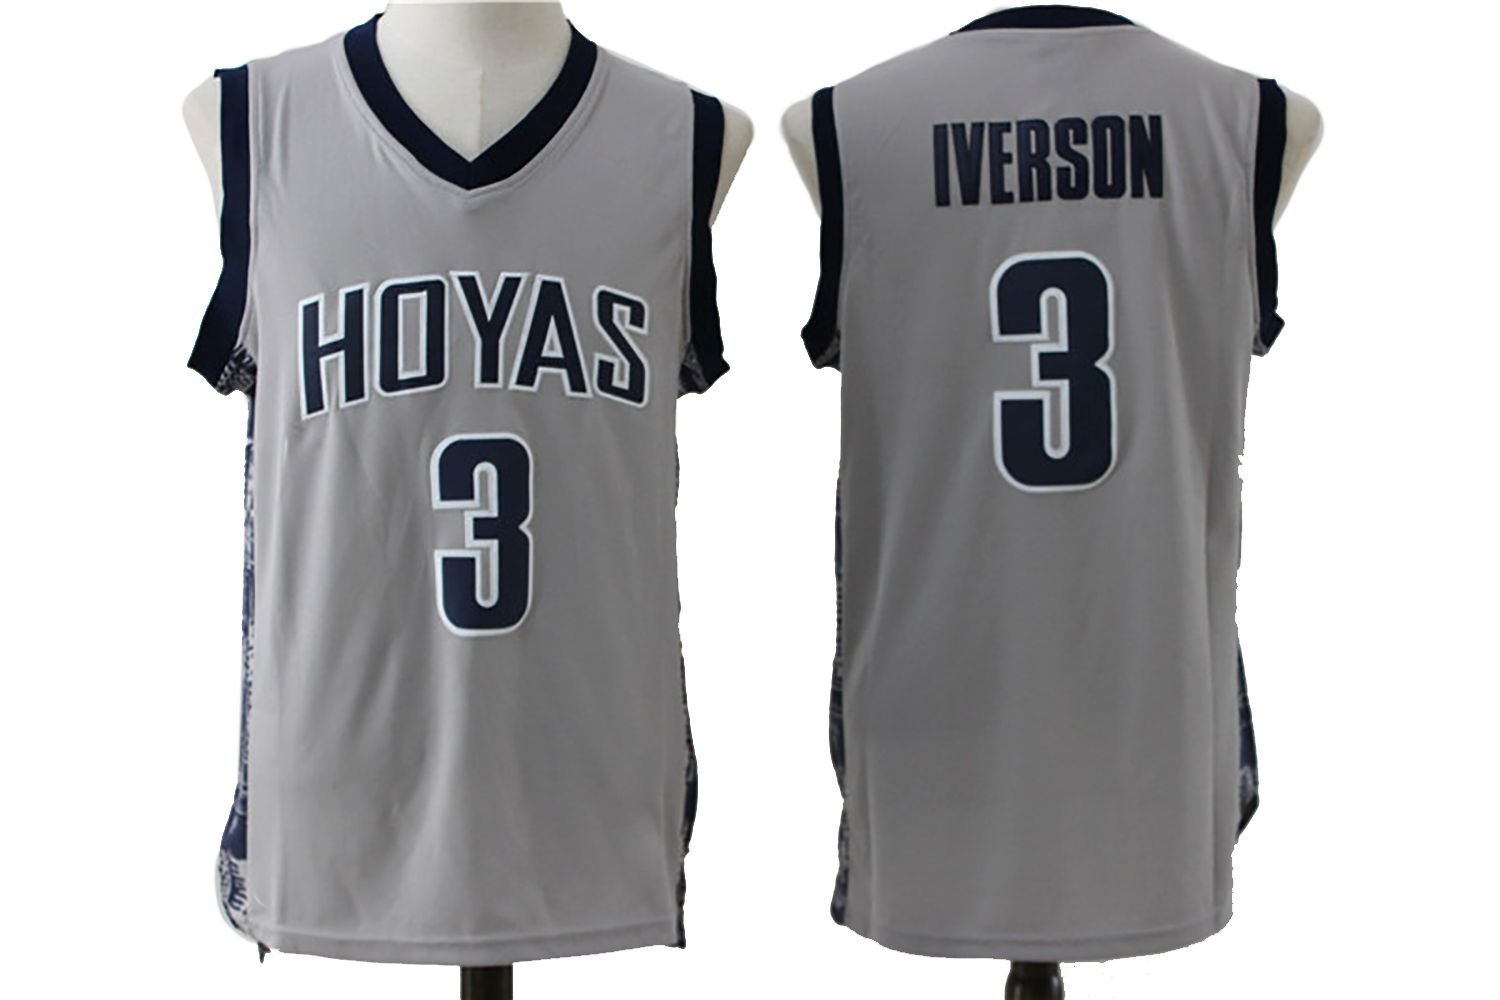 45b1b72c66d ... jersey gray blue suture; get quotations · mens allen iverson 3  georgetown hoyas college throwback embroidery basketball jers